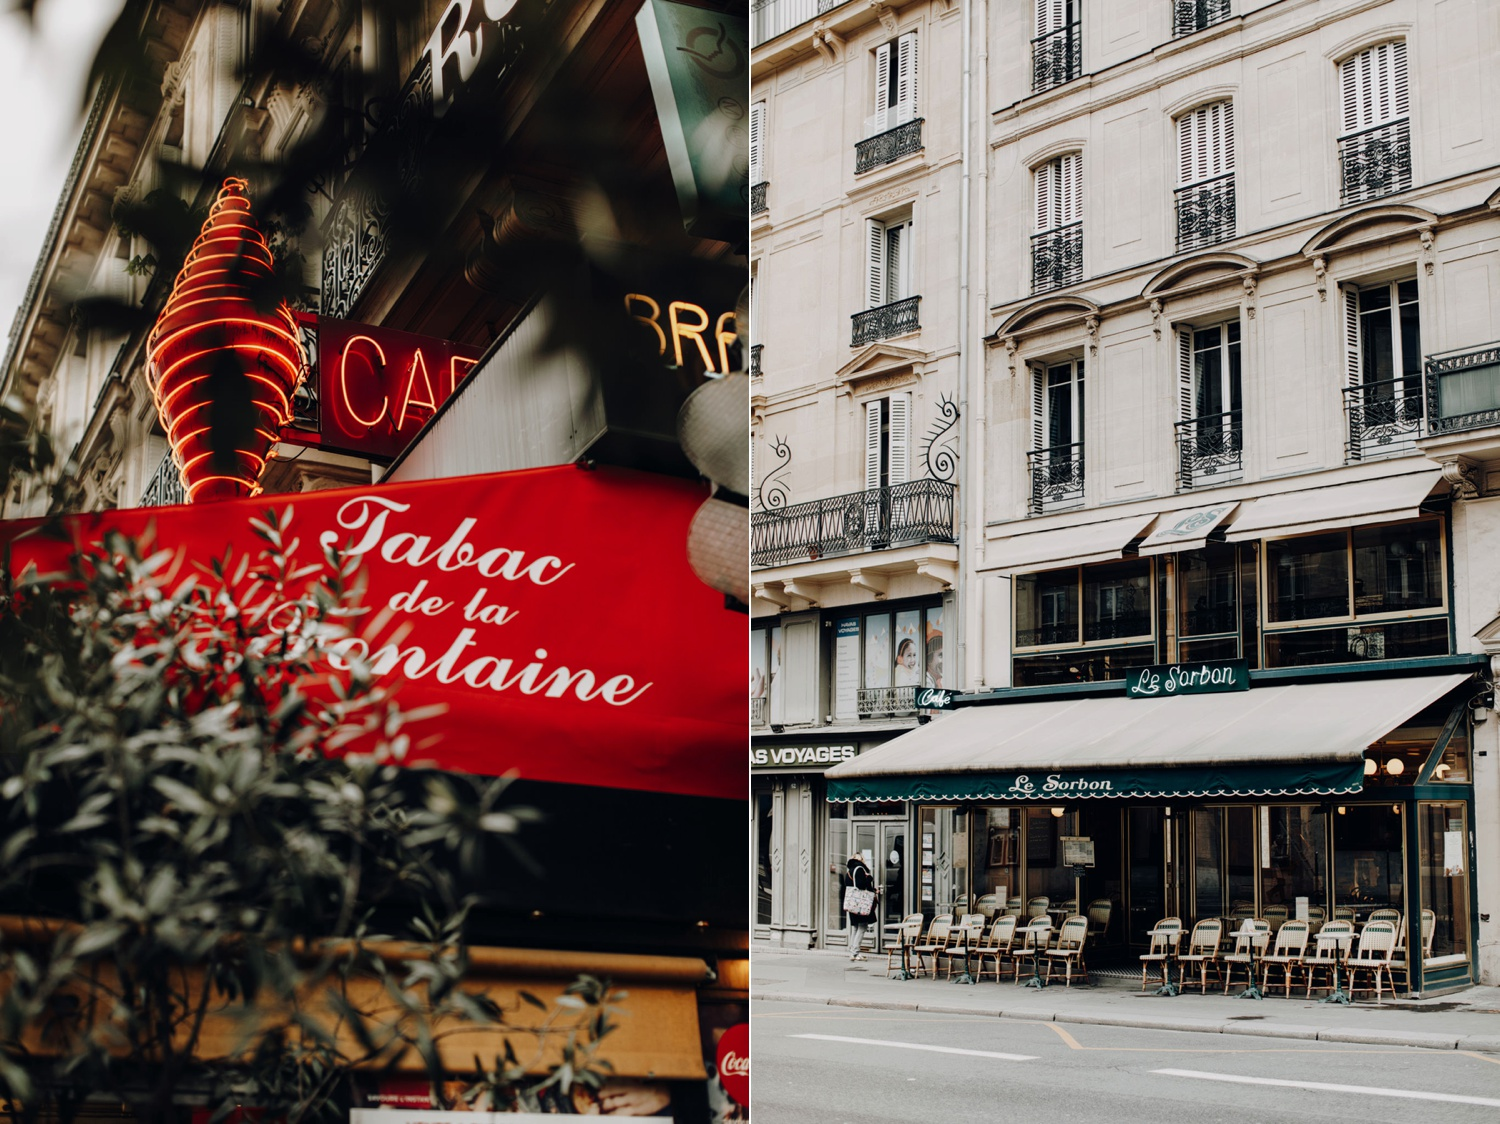 Cafes of Paris, France